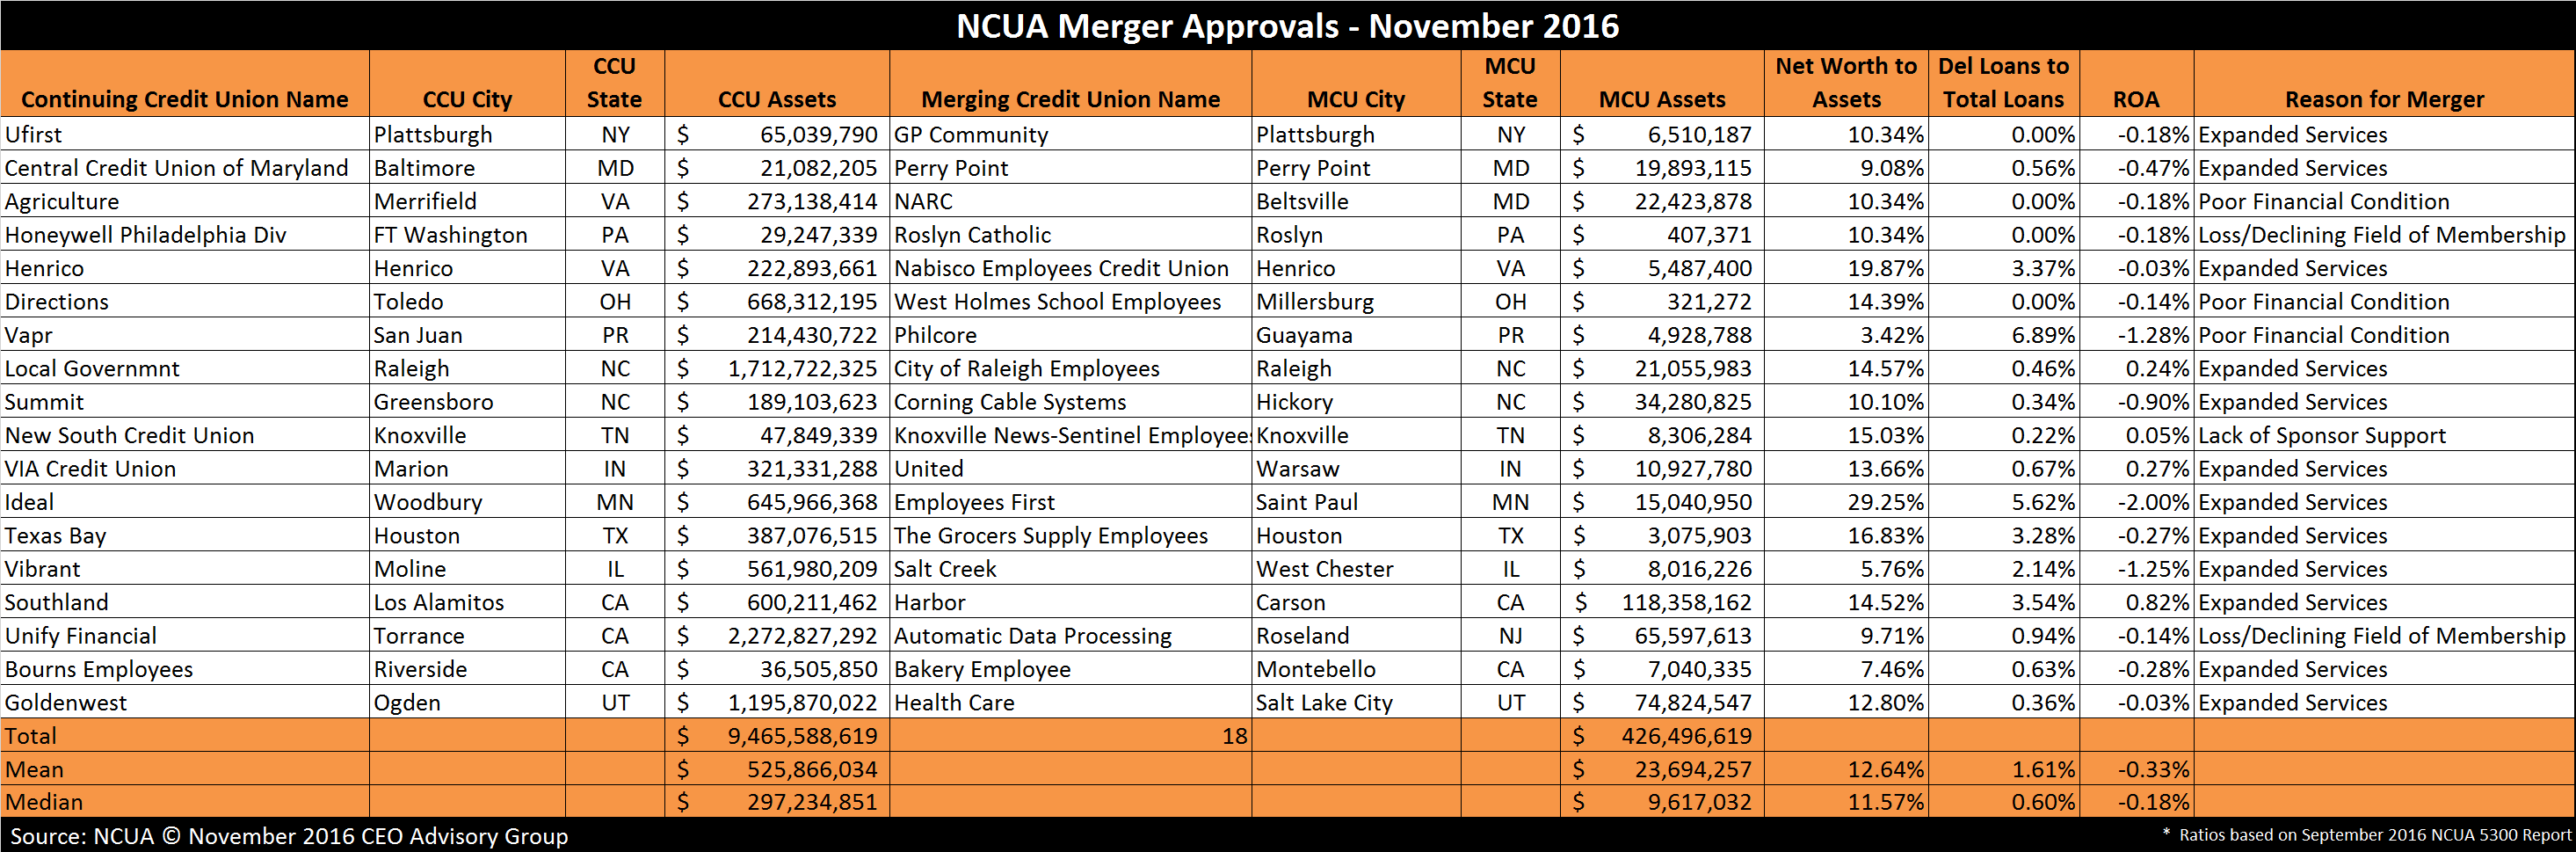 NCUA Credit Union Merger Approvals - November 2016